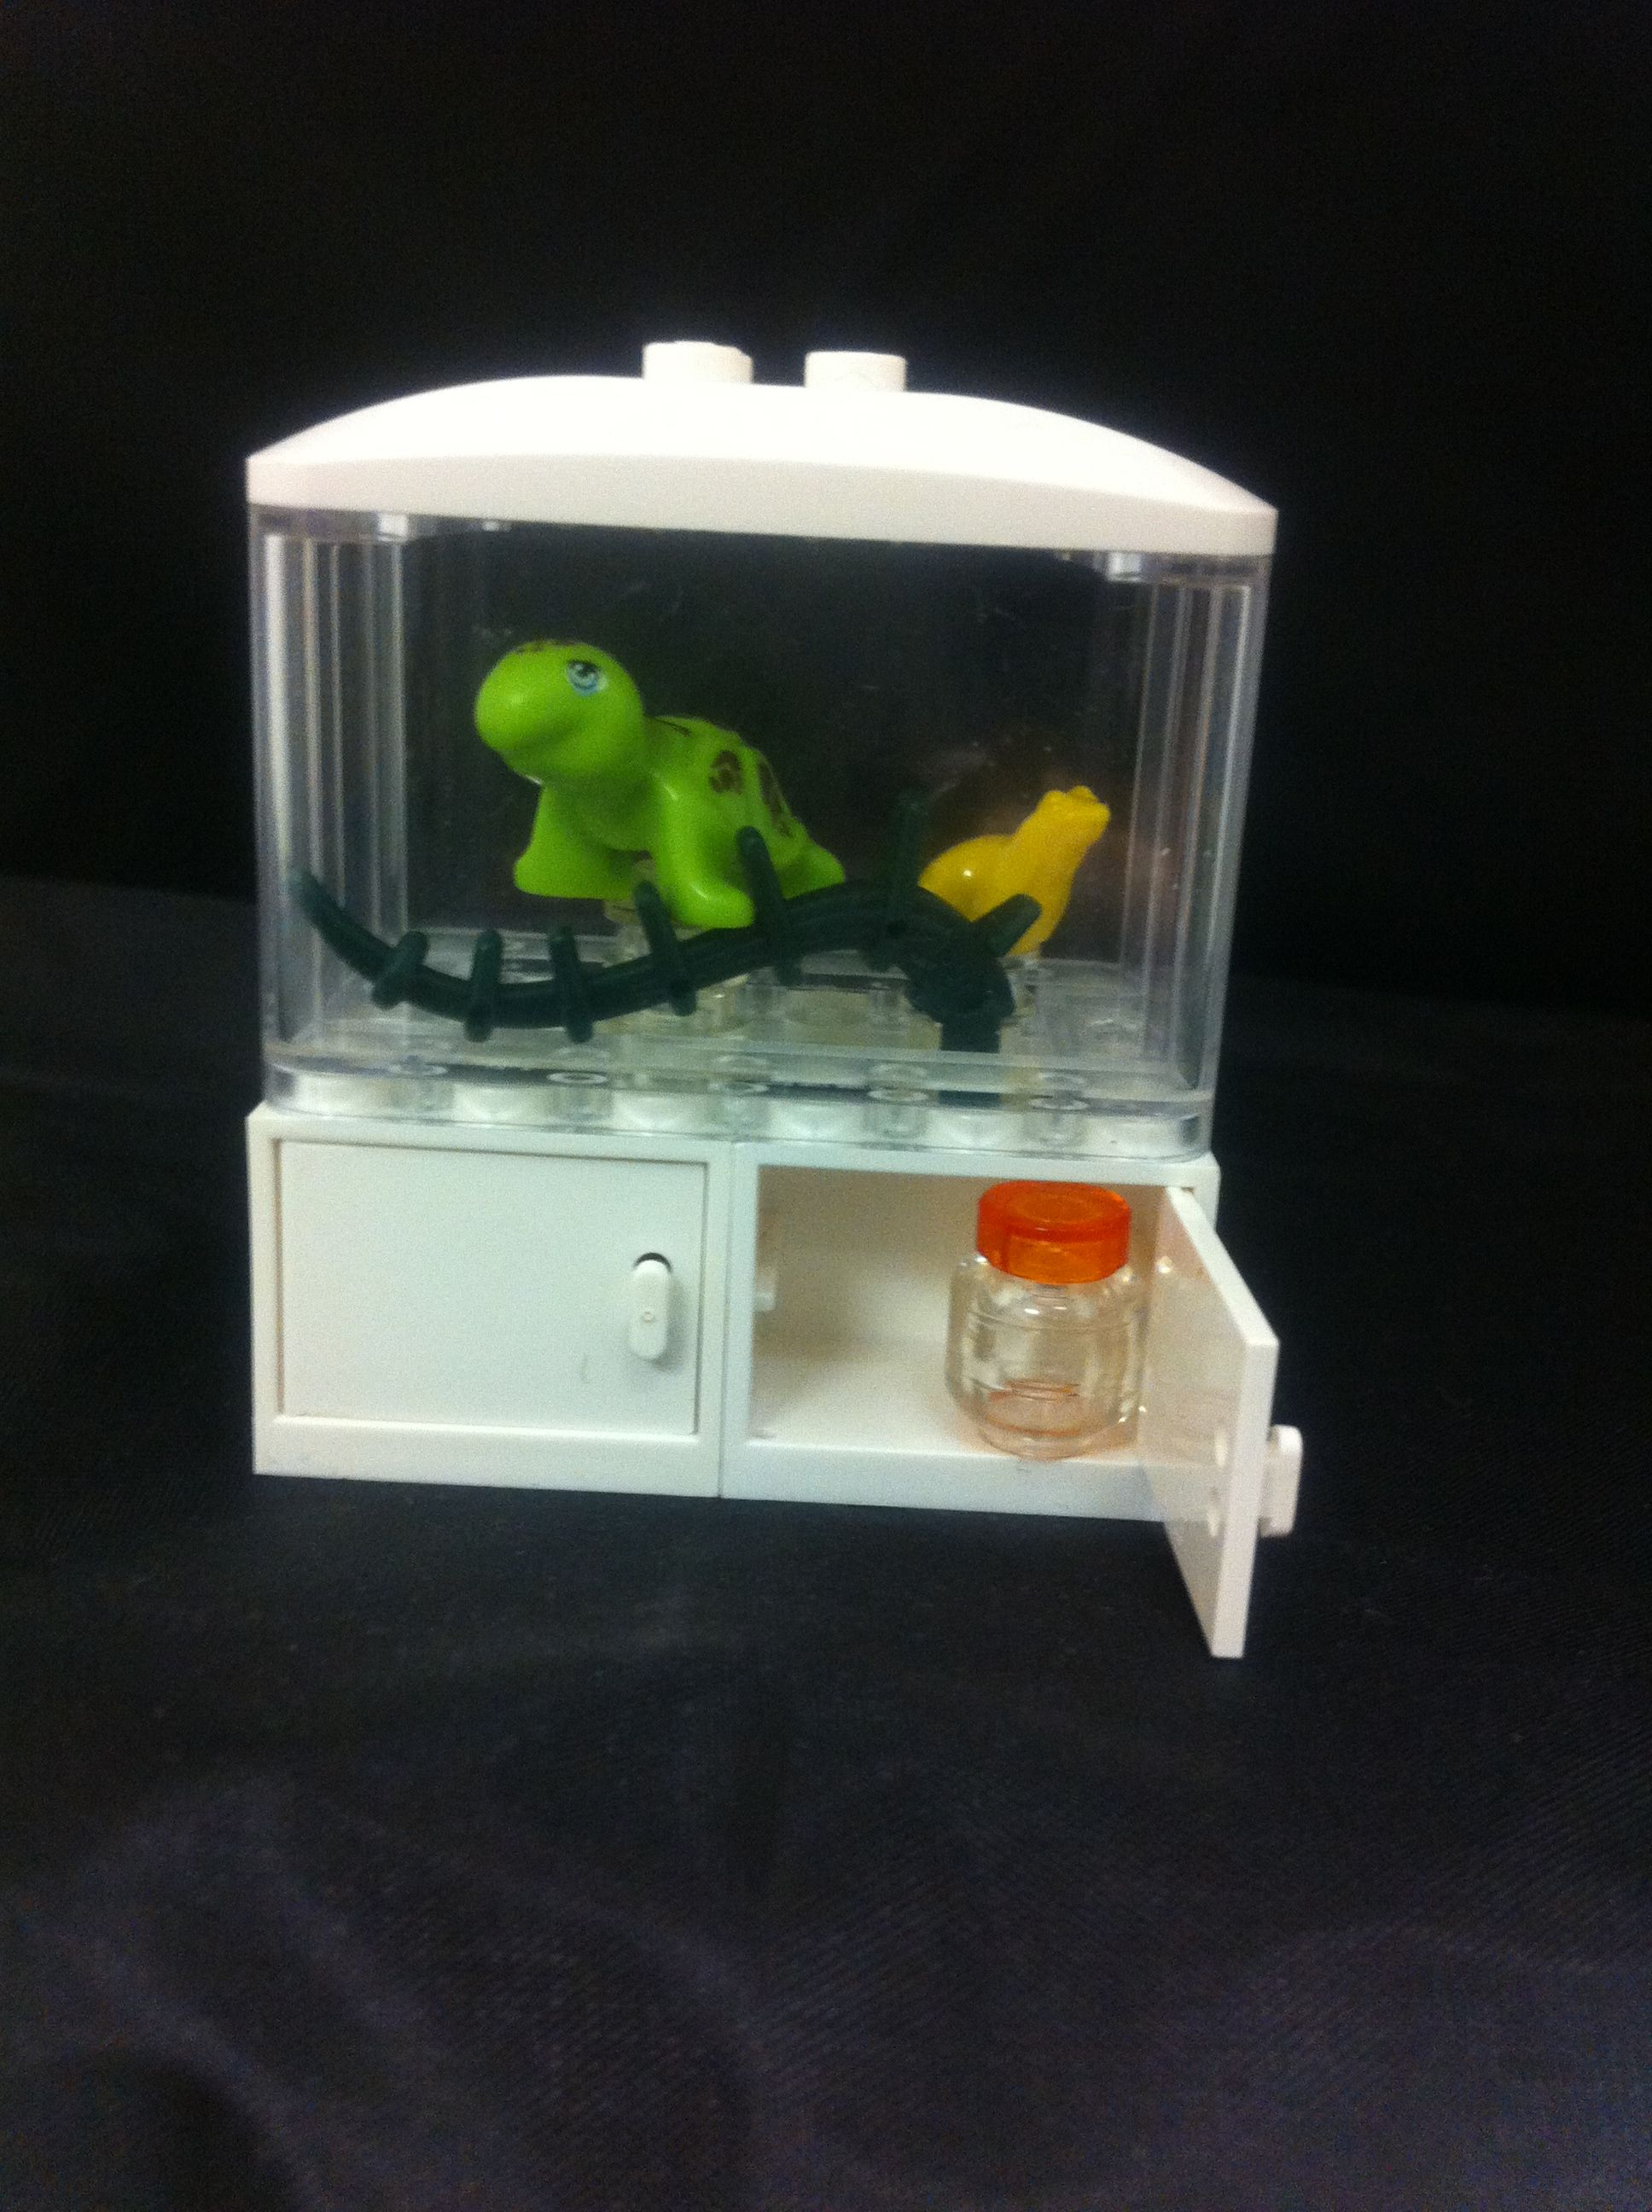 Just made this adorable Lego fish tank Even has a jar of fish food